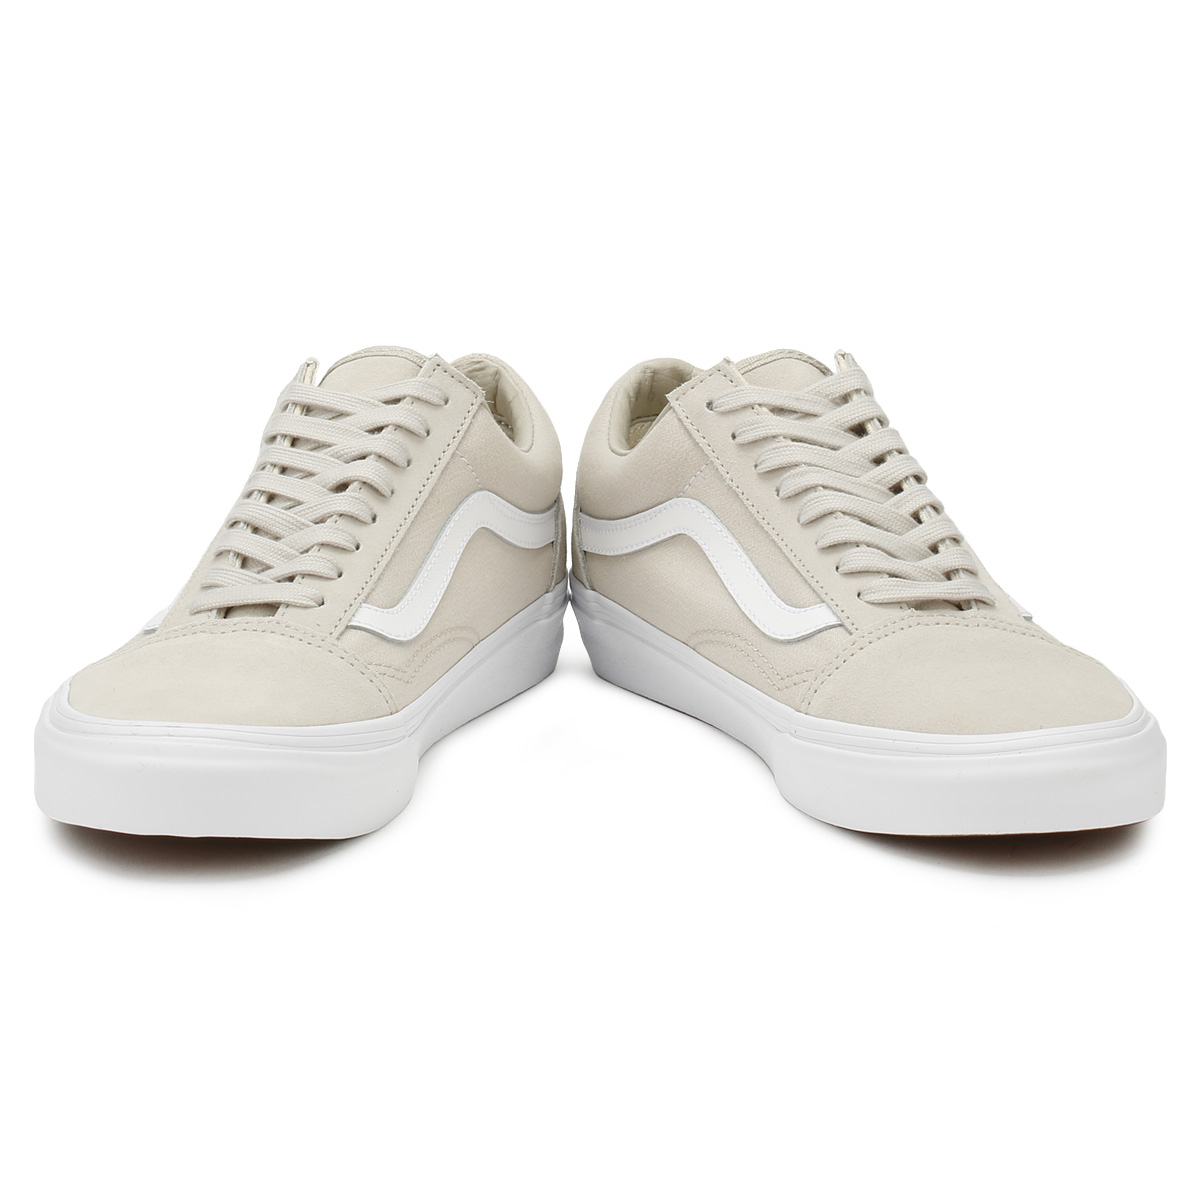 bd51b530cc Vans Unisex Silver Lining   True White Suiting Old Skool Lace Up Skater  Shoes